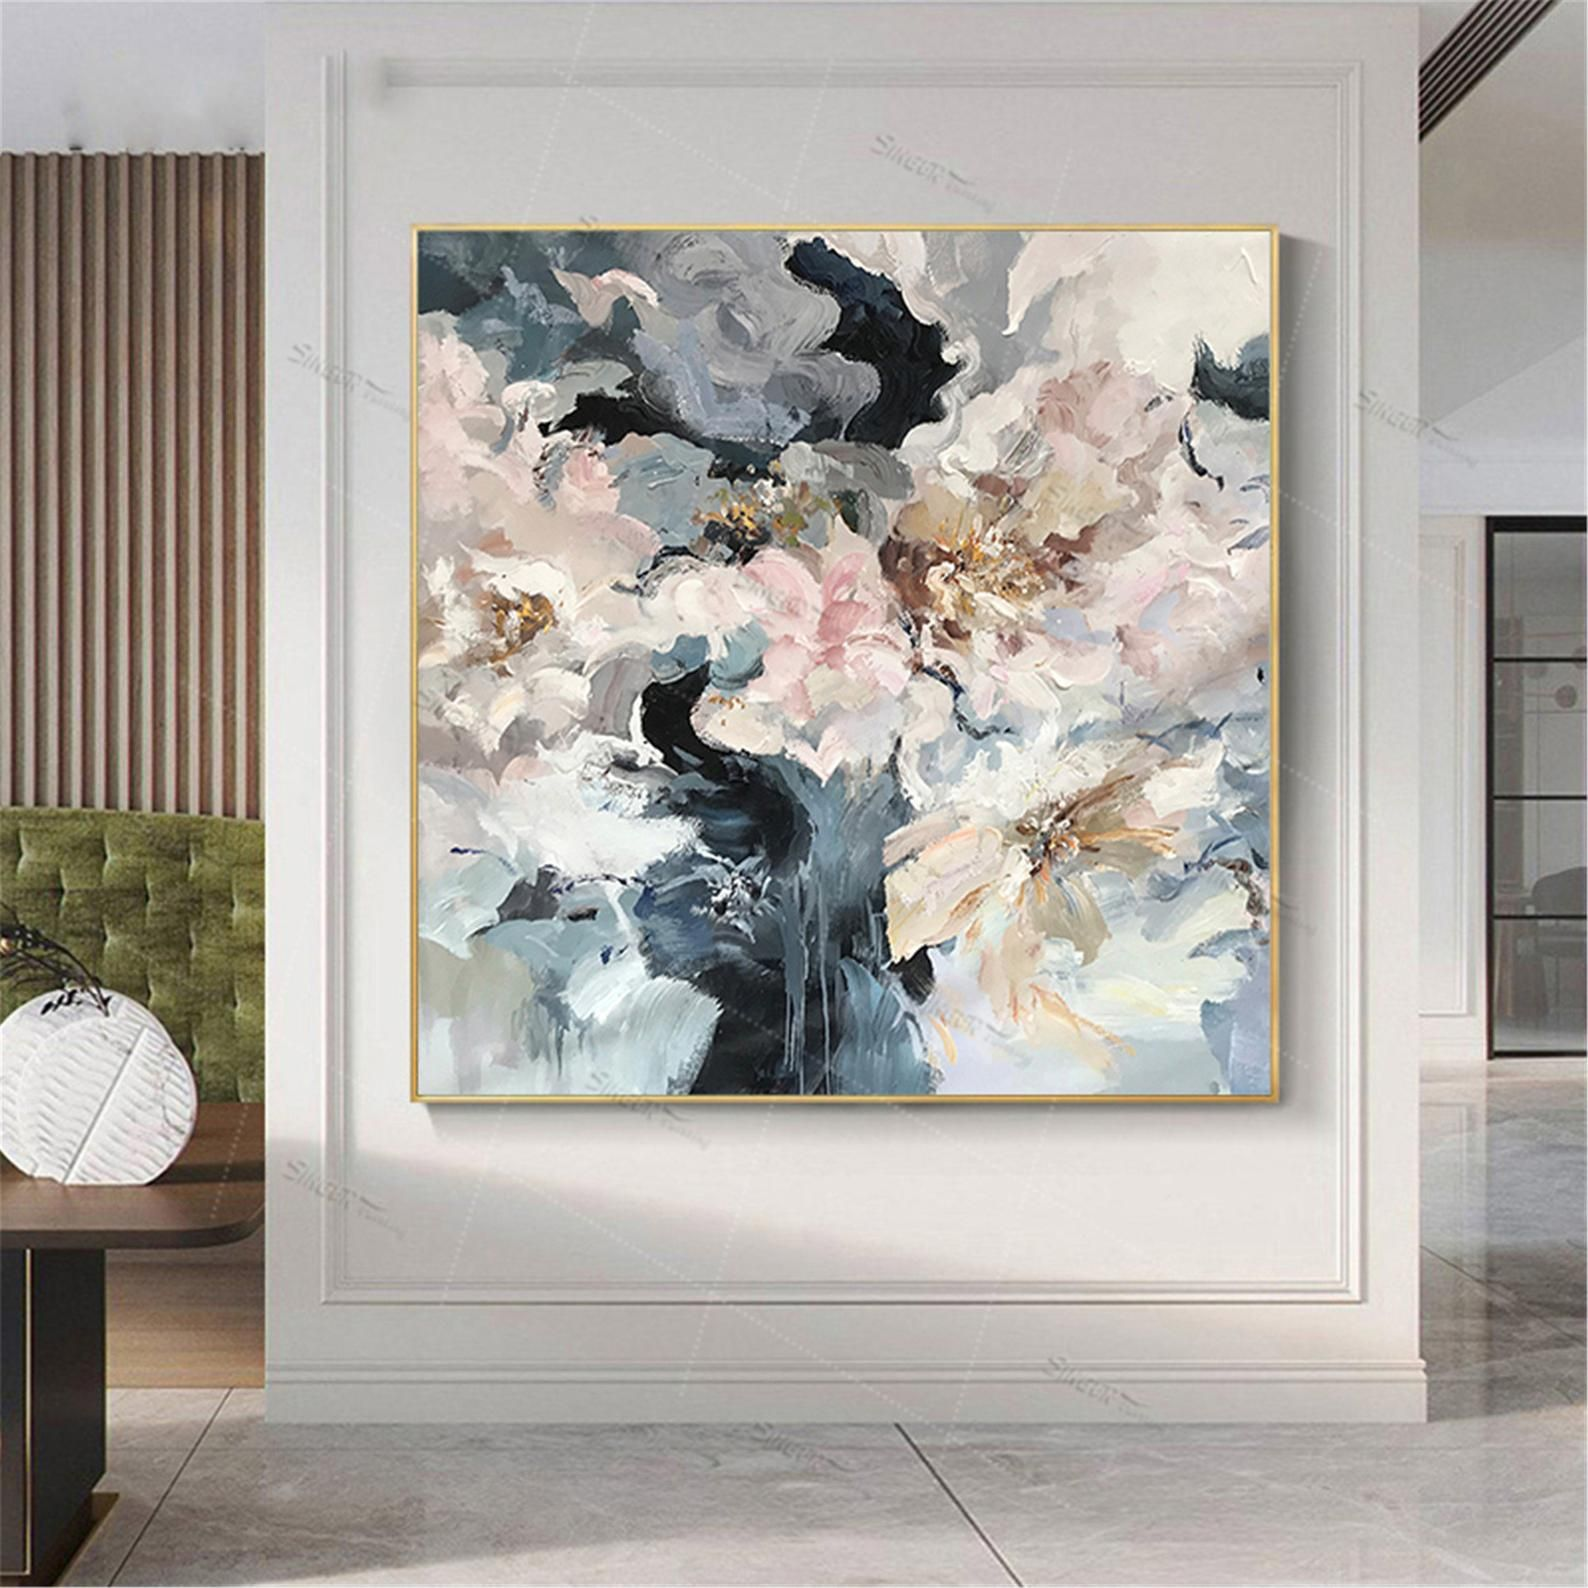 Abstract Flowers Painting Canvas Wall Art Pictures For Living Etsy In 2020 Flower Painting Canvas Wall Art Pictures Abstract Flower Painting #painting #frames #for #living #room